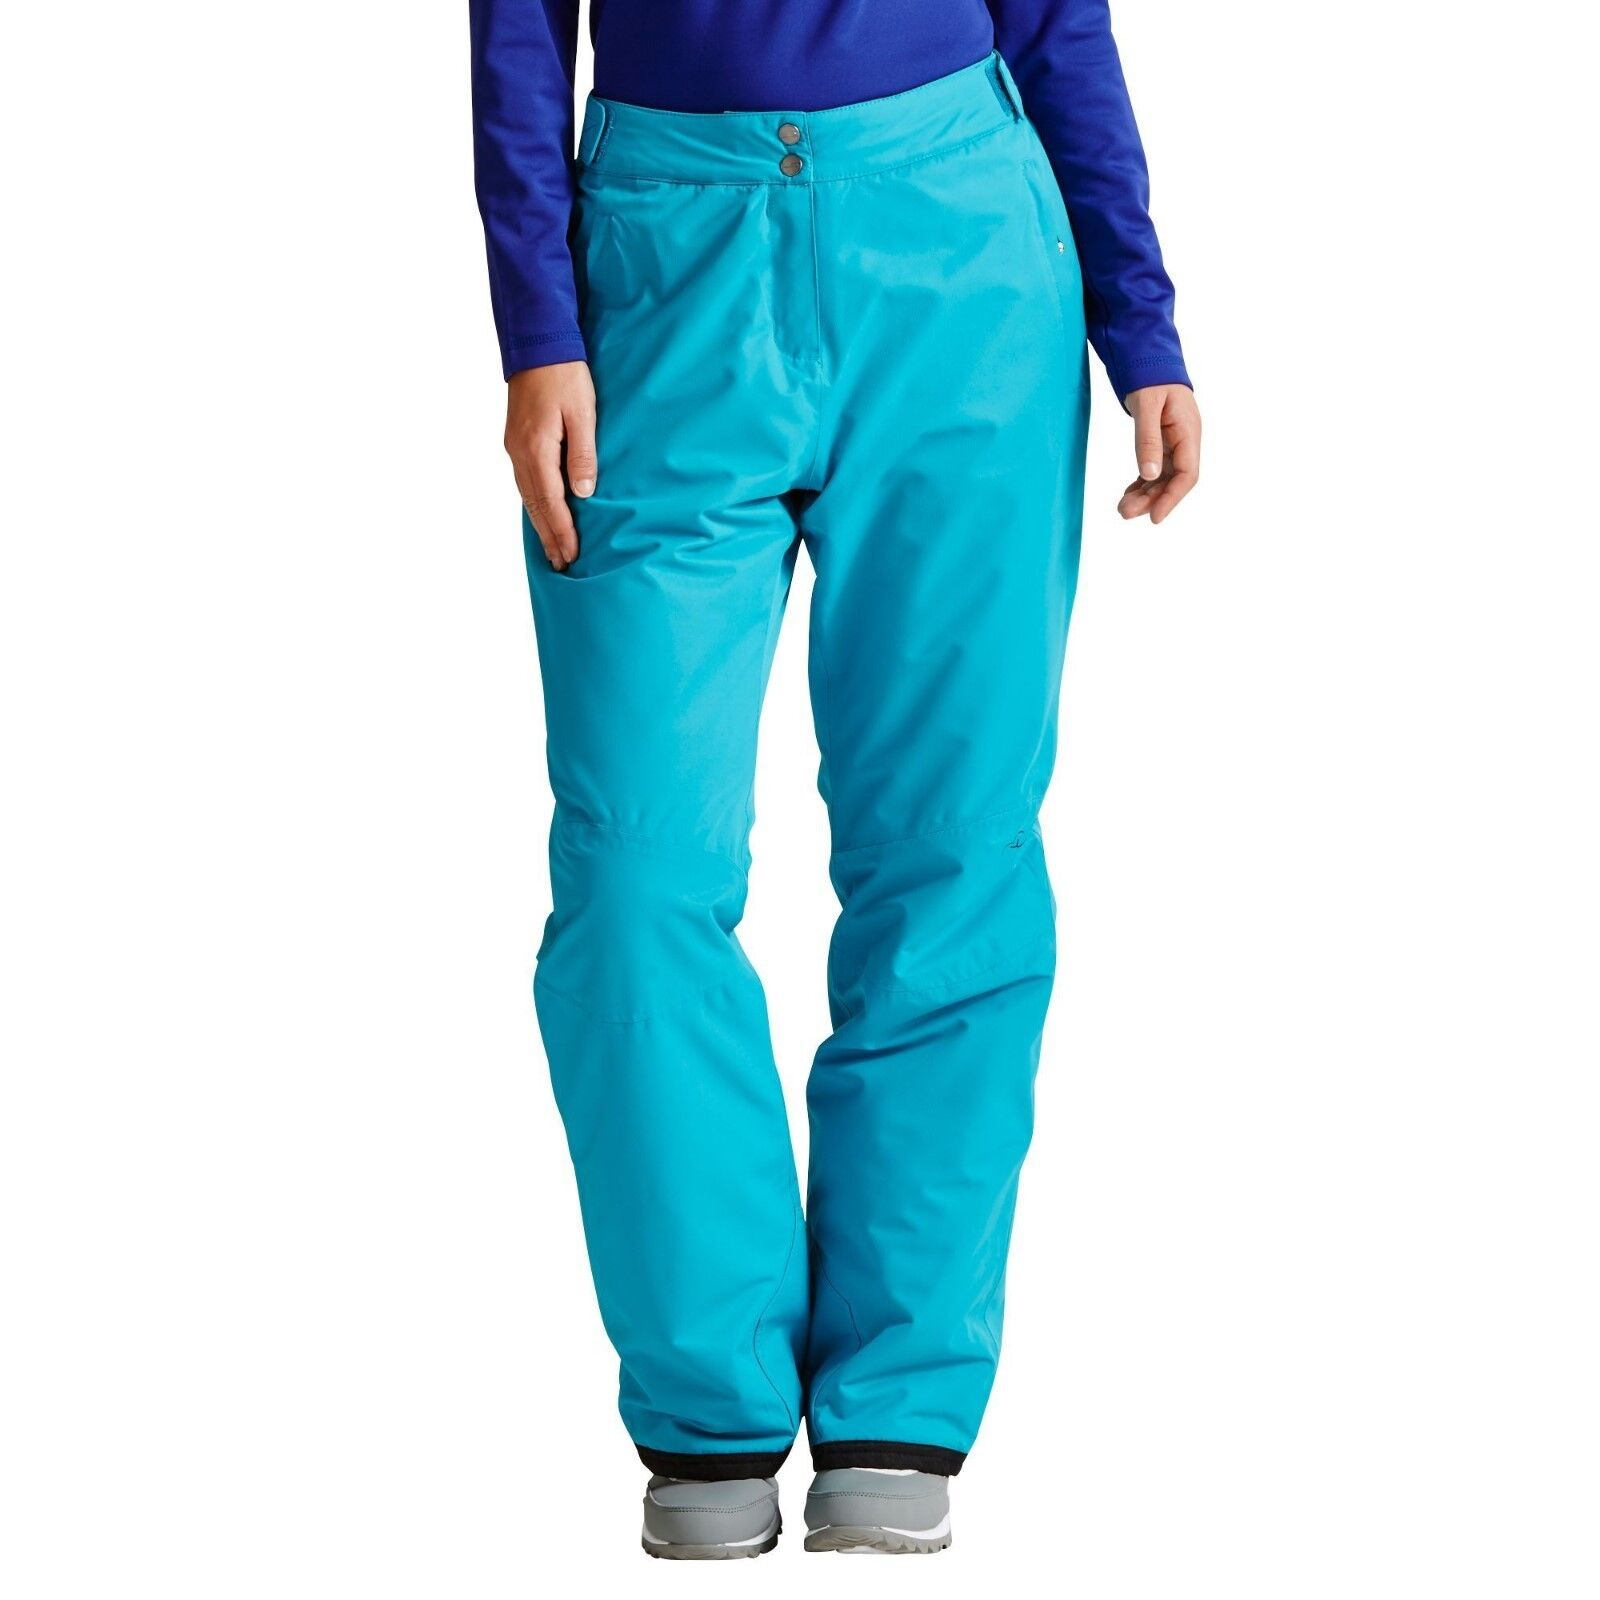 DARE2B  Womens ATTRACT SEA BREEZE blueE Ski Ladies Salopettes Size 8-20 SHORT LEG  for your style of play at the cheapest prices